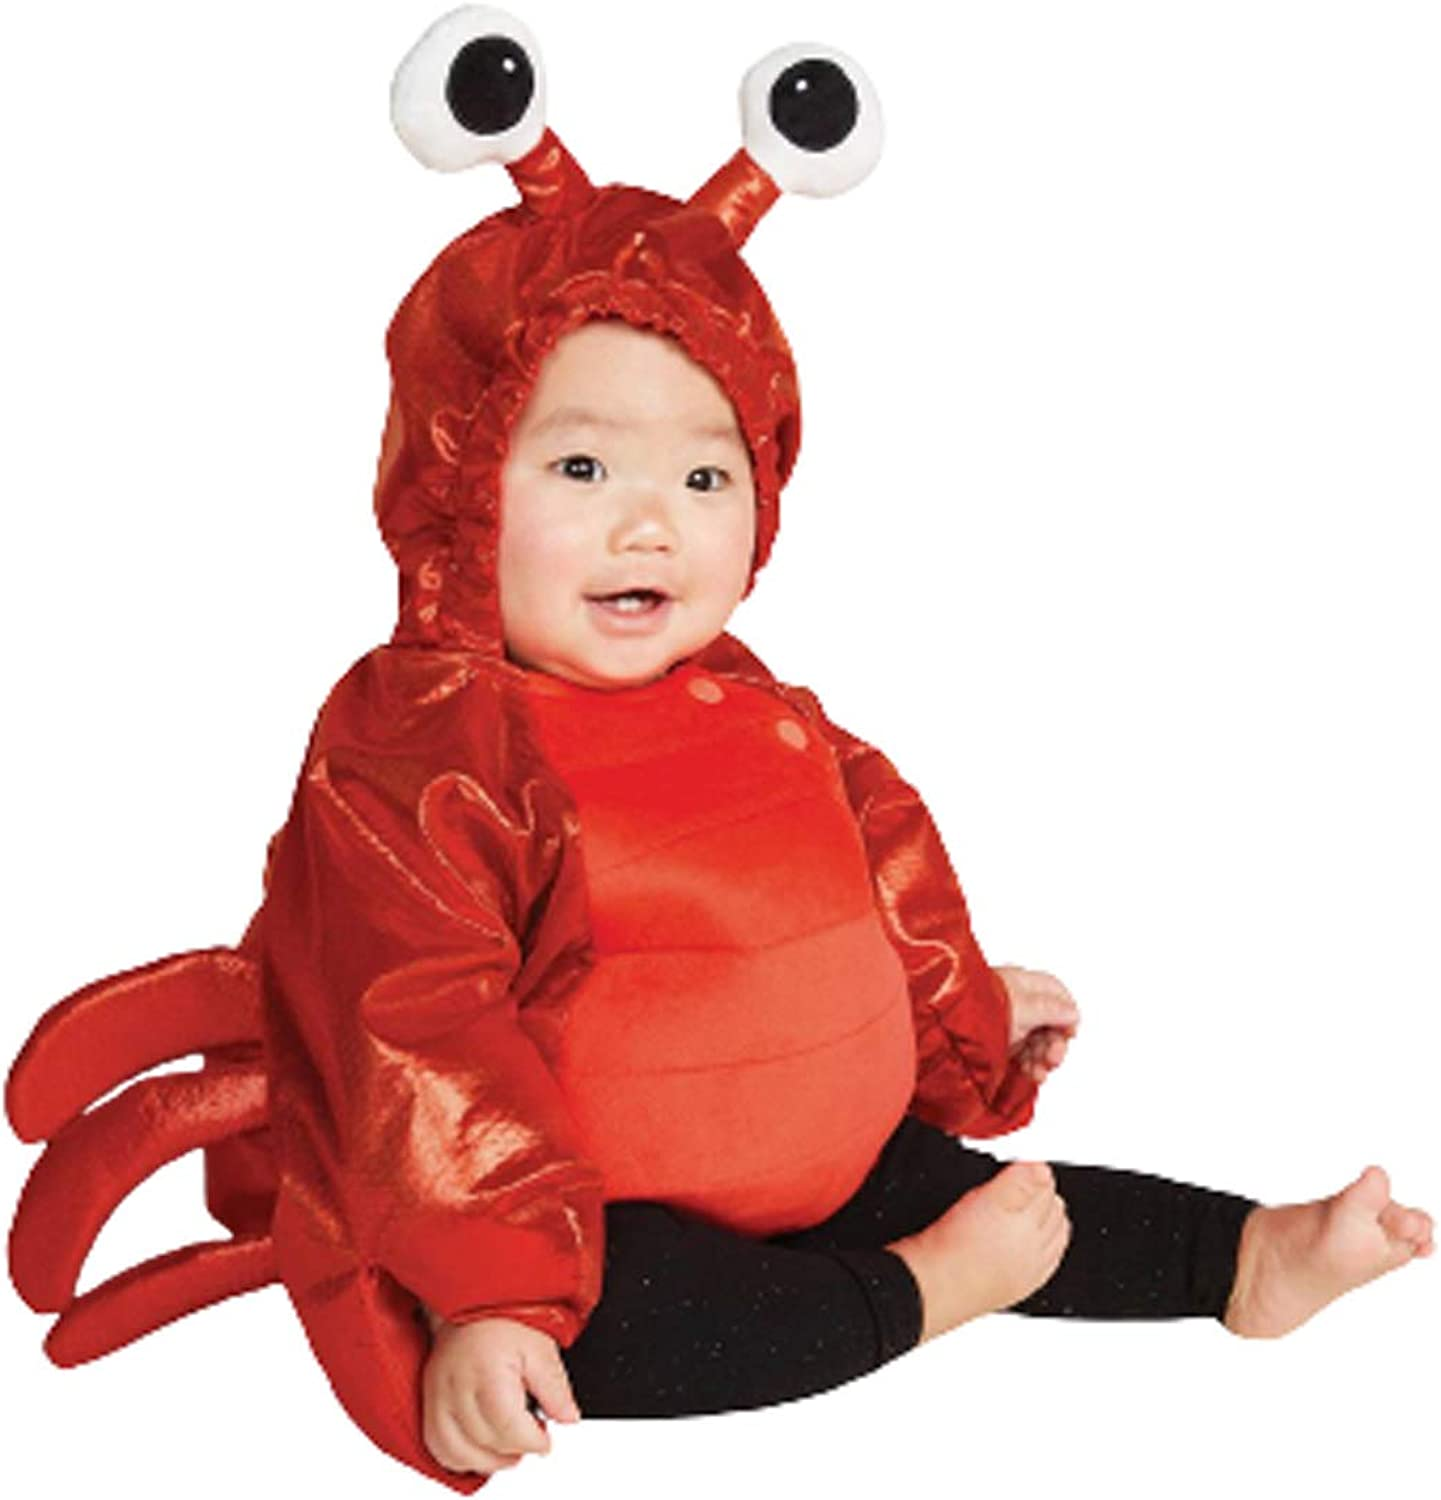 Boutique 9 Baby Unisex Holiday Lobster Hooded Pullover Dress Up Pajama Sweater Warm Cozy Fluffy Outfit